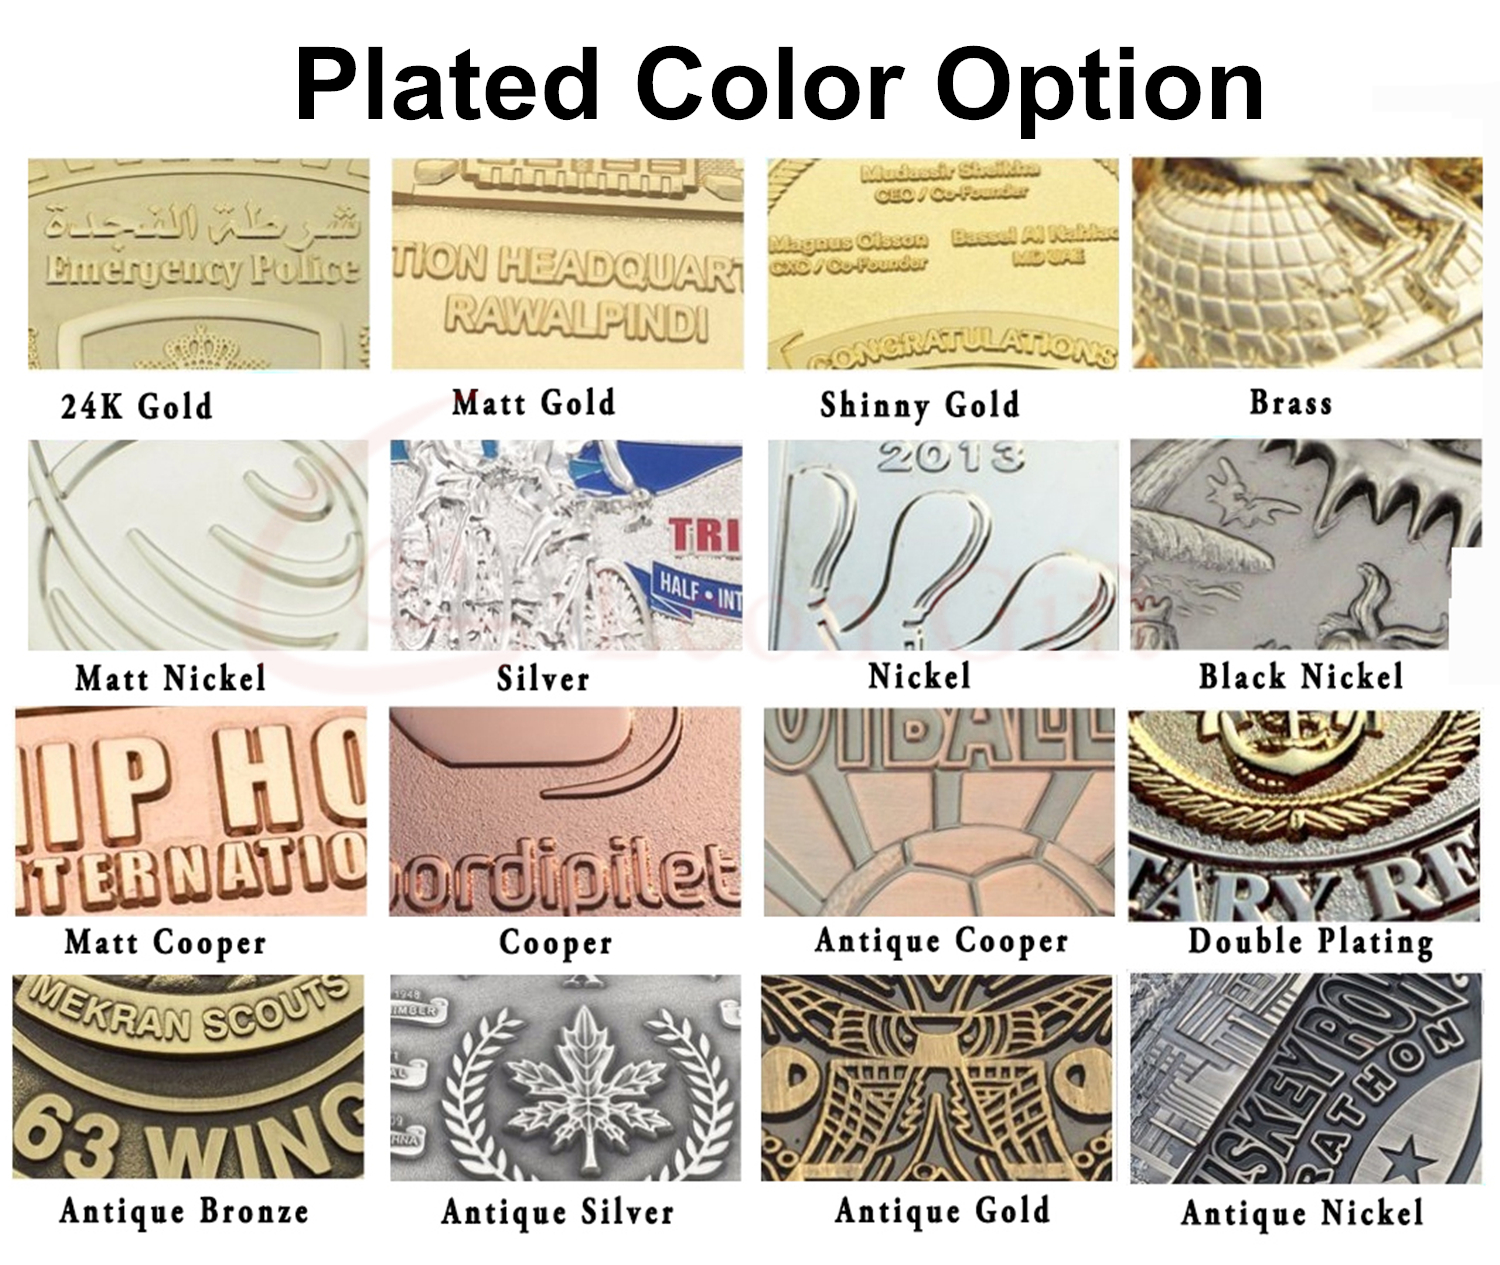 Plated Color .jpg